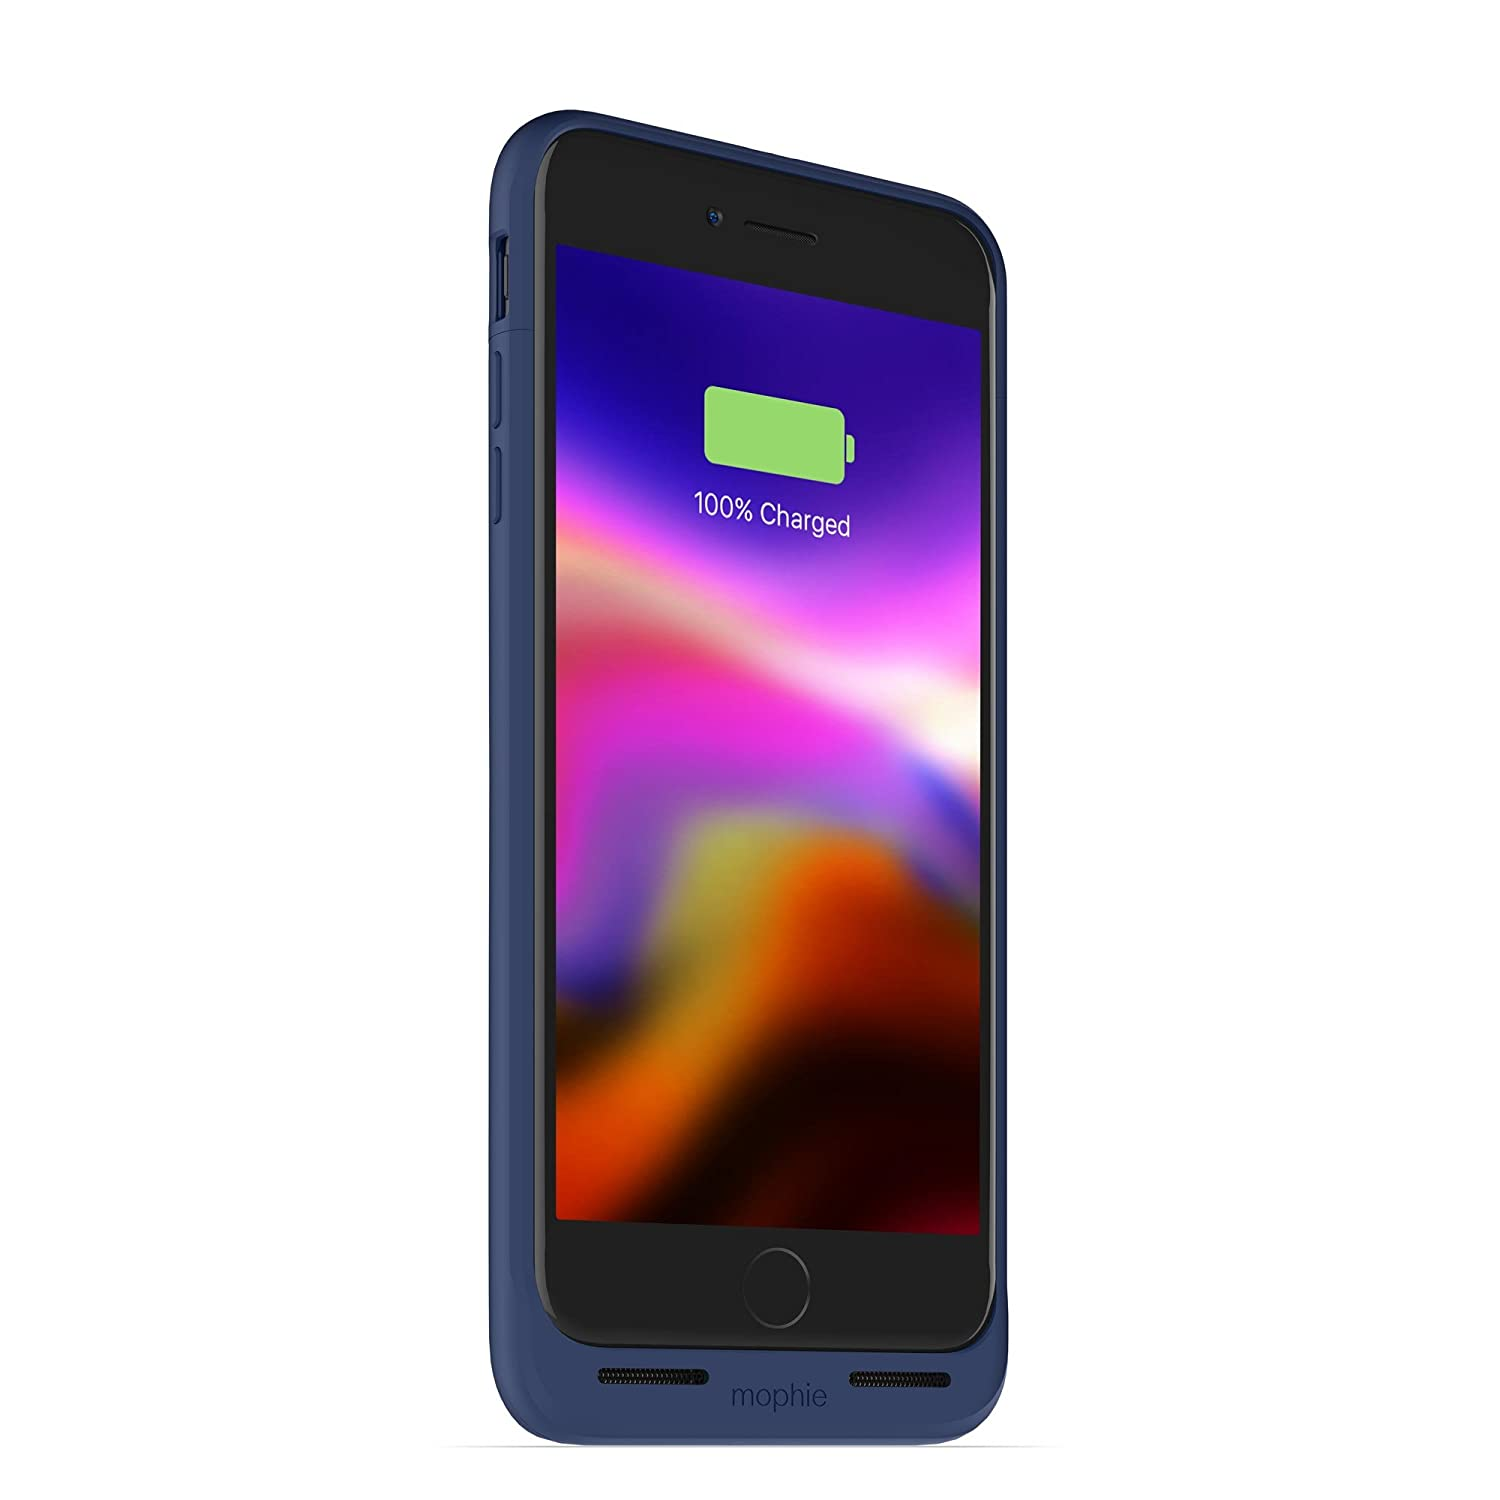 Charge Force Wireless Power Charging Protective Battery Pack Case for iPhone 8 Plus Mophie Juice Pack Wireless Blue